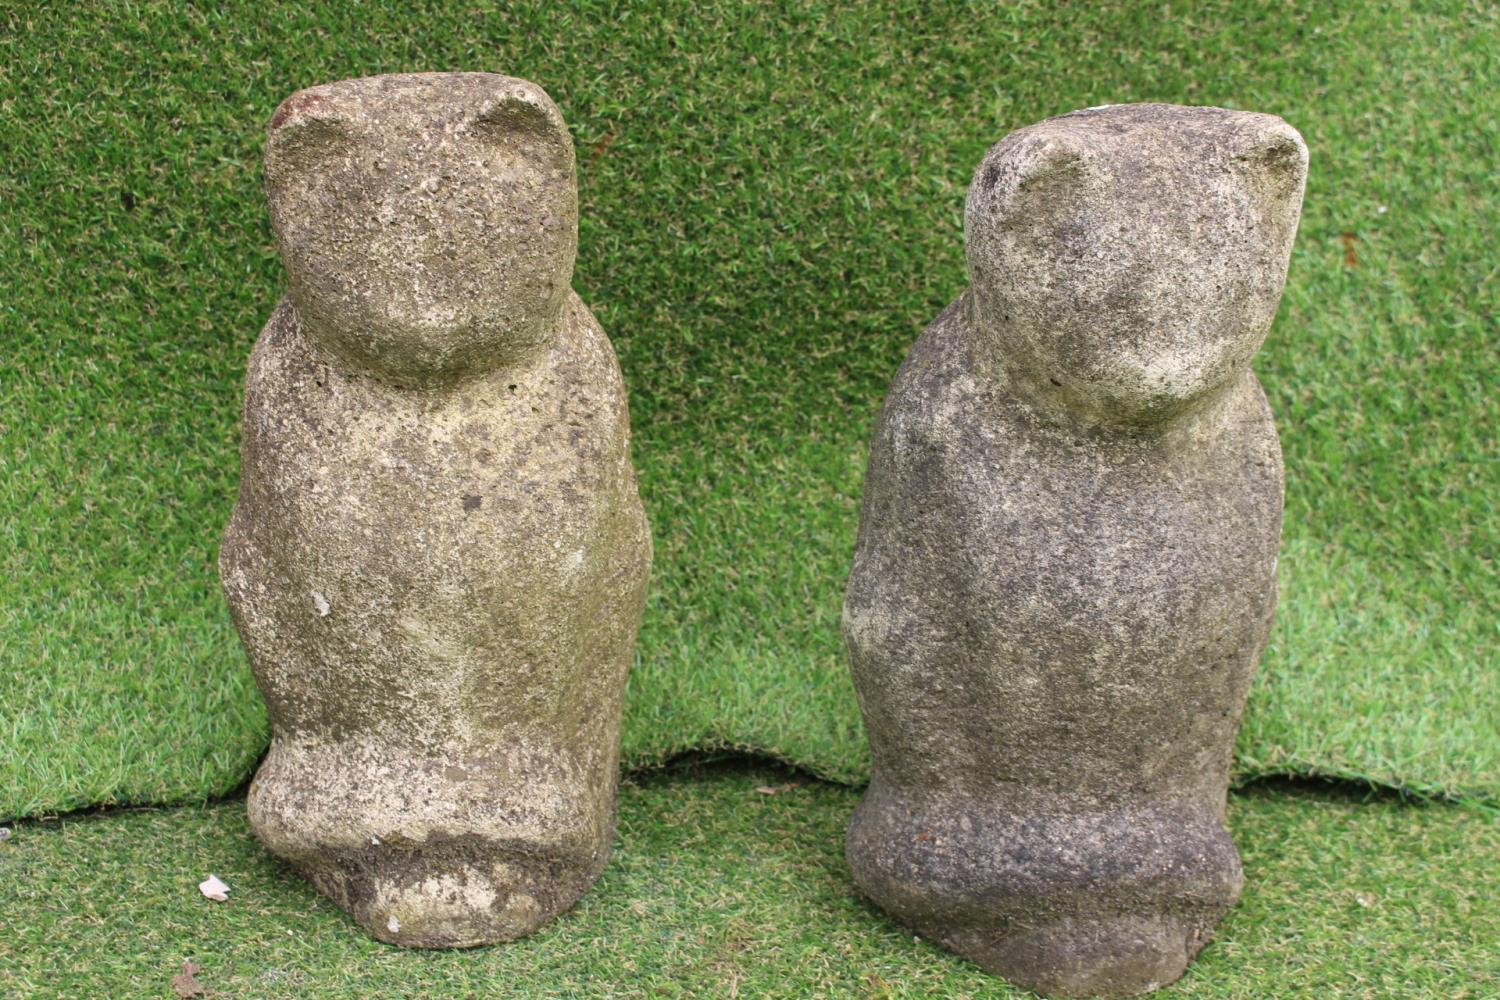 Pair of sandstone models of Cats